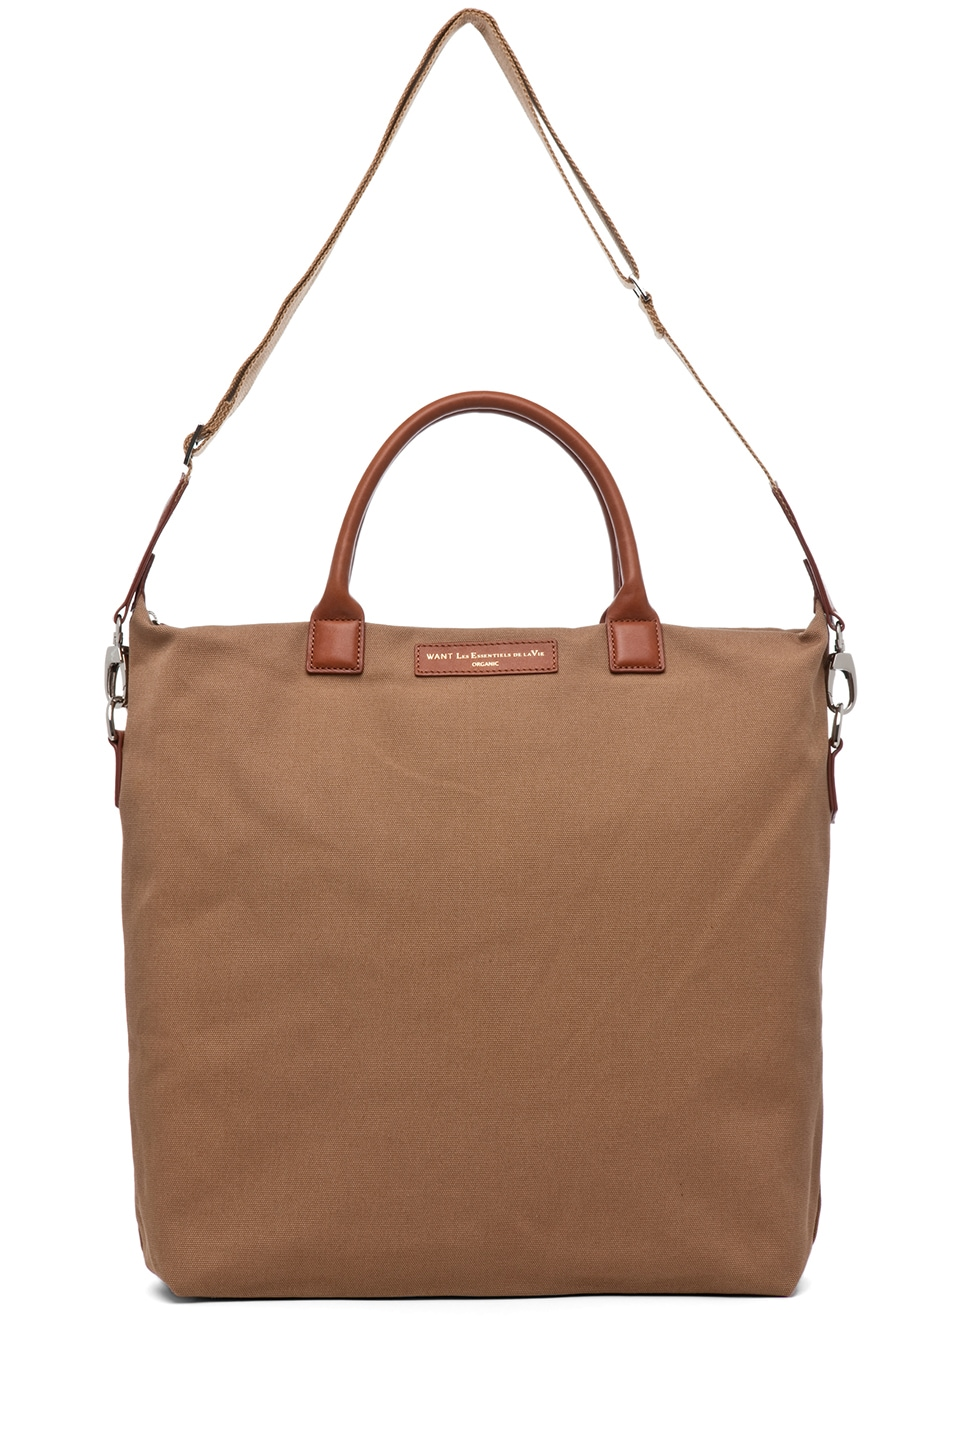 Image 5 of Want Les Essentiels De La Vie O'Hare Shopper Tote in Beige & Cognac